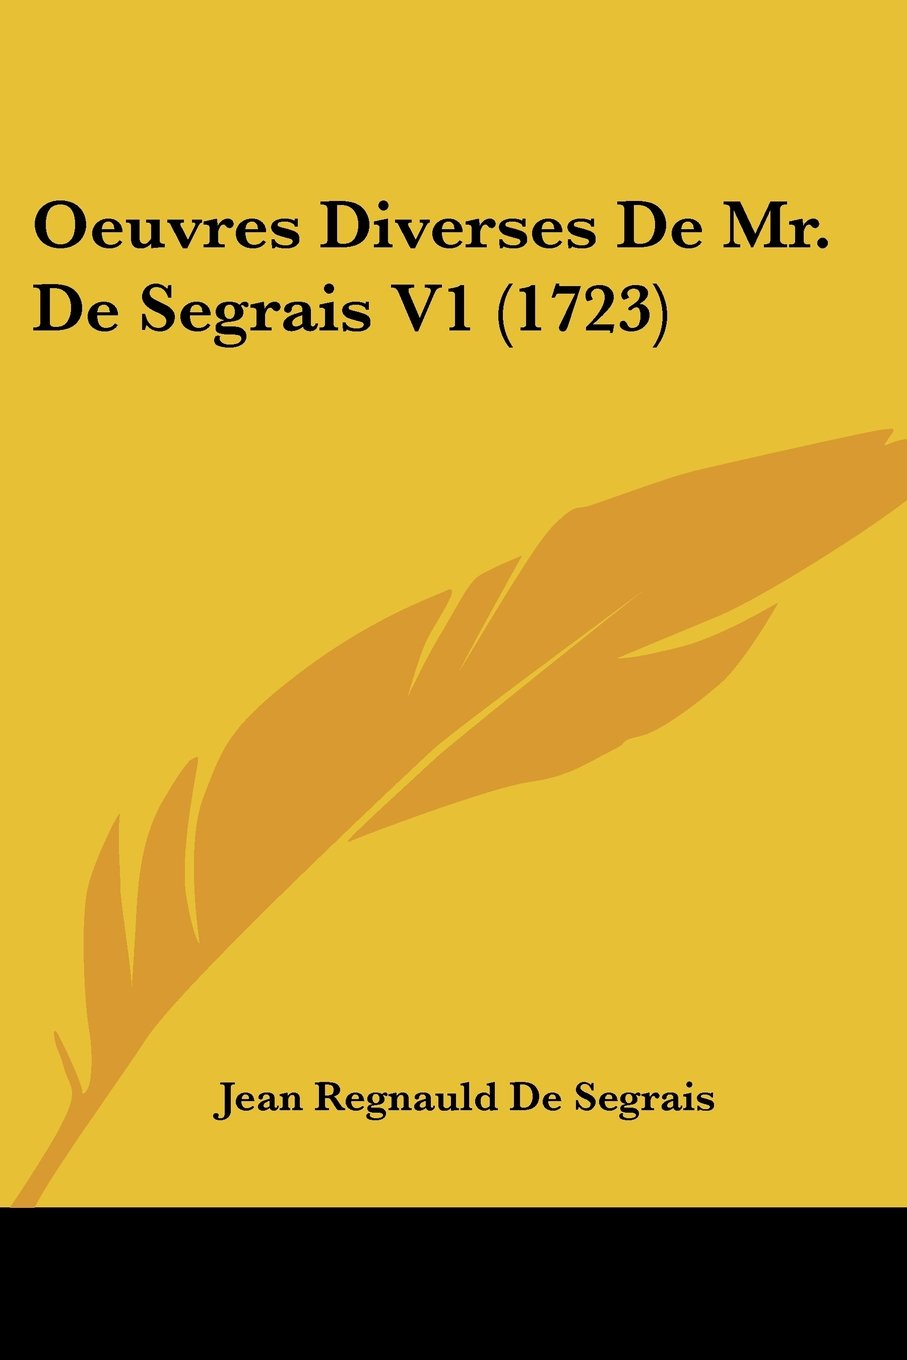 Download Oeuvres Diverses De Mr. De Segrais V1 (1723) (French Edition) PDF